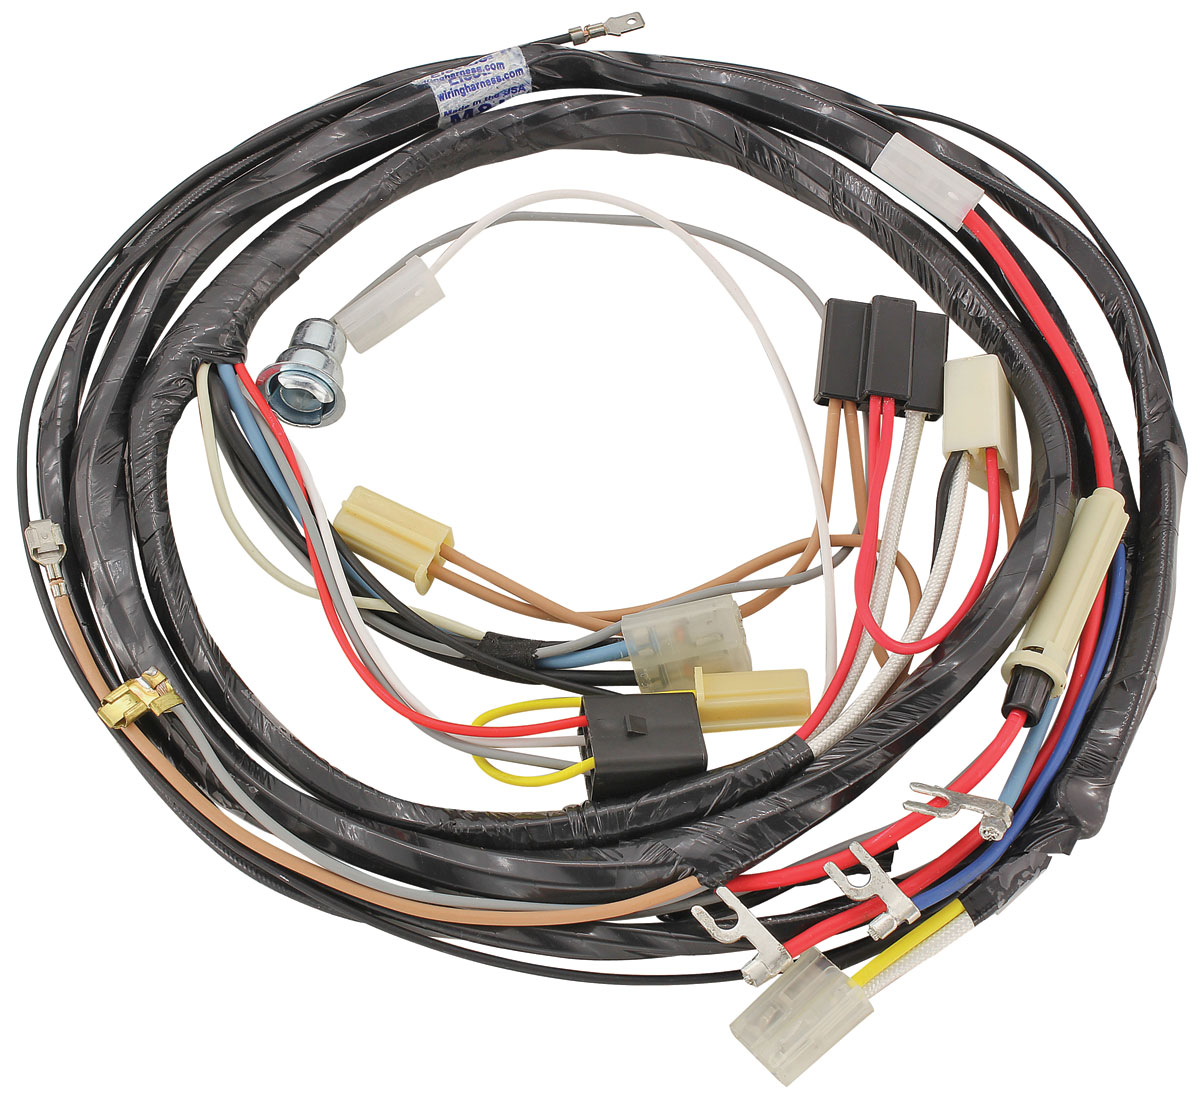 Wiring Harness, Air Conditioning, 1959 Bonn/Cat, w/ Circulaire inc. Heater Wire